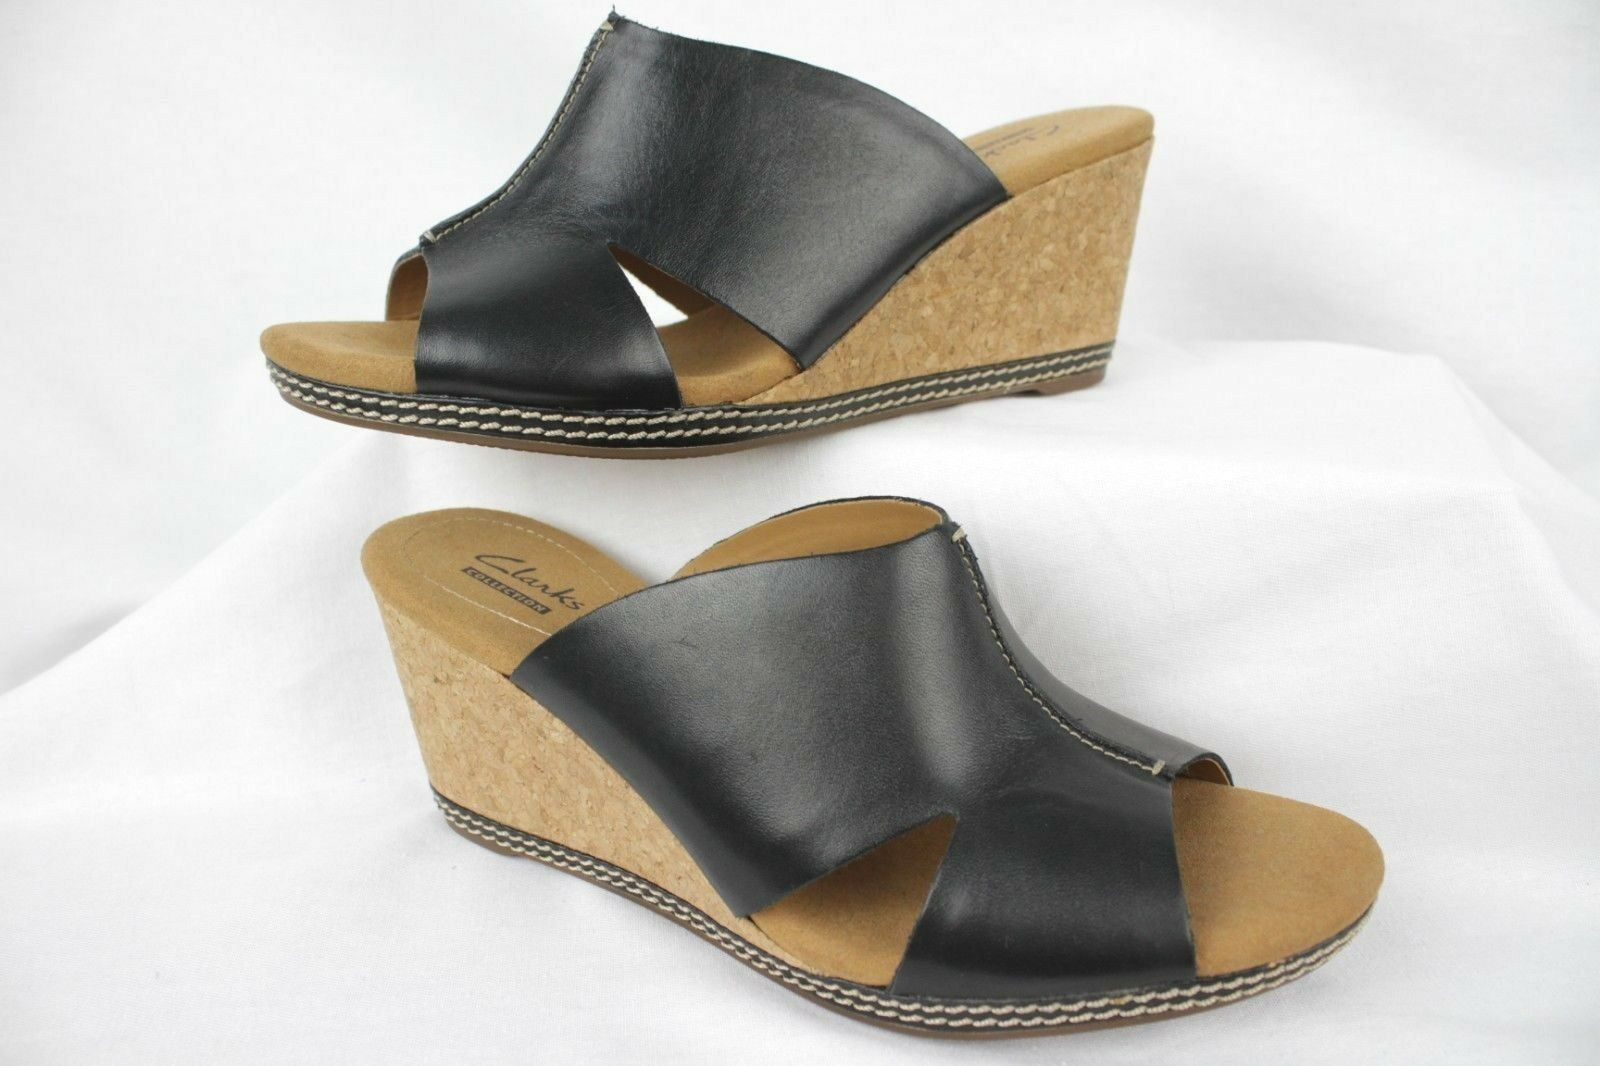 New Clarks Womens Helio Island Sz 10M Black Leather Slip-On Cork Wedge Sandal